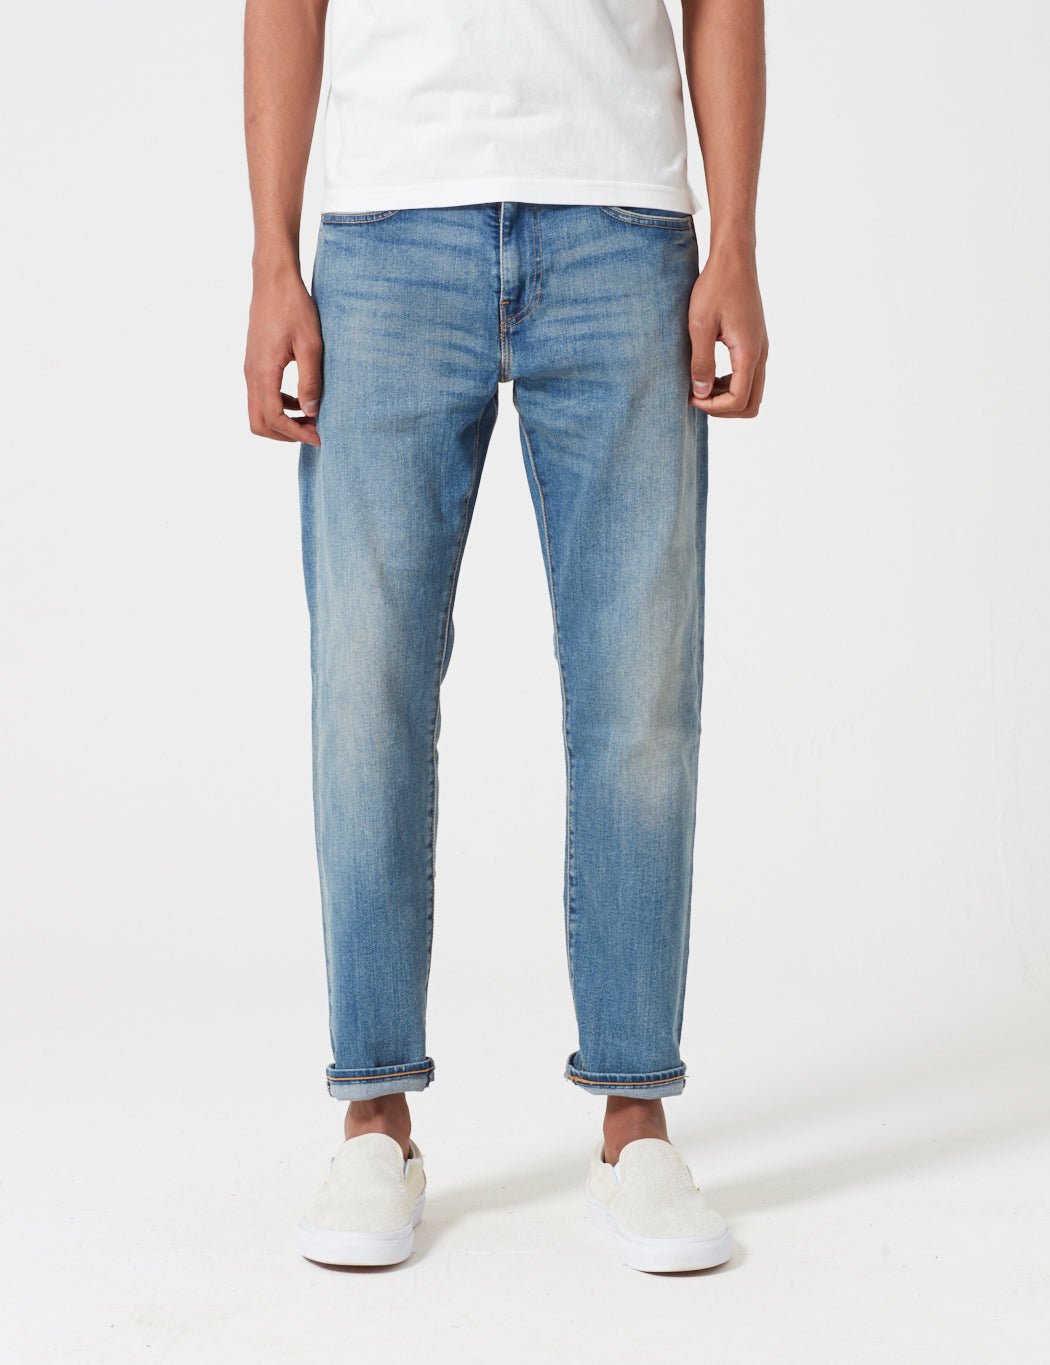 82b4edec614 Levis 502 Jeans (Relaxed Tapered) - Dennis Blue | URBAN EXCESS.